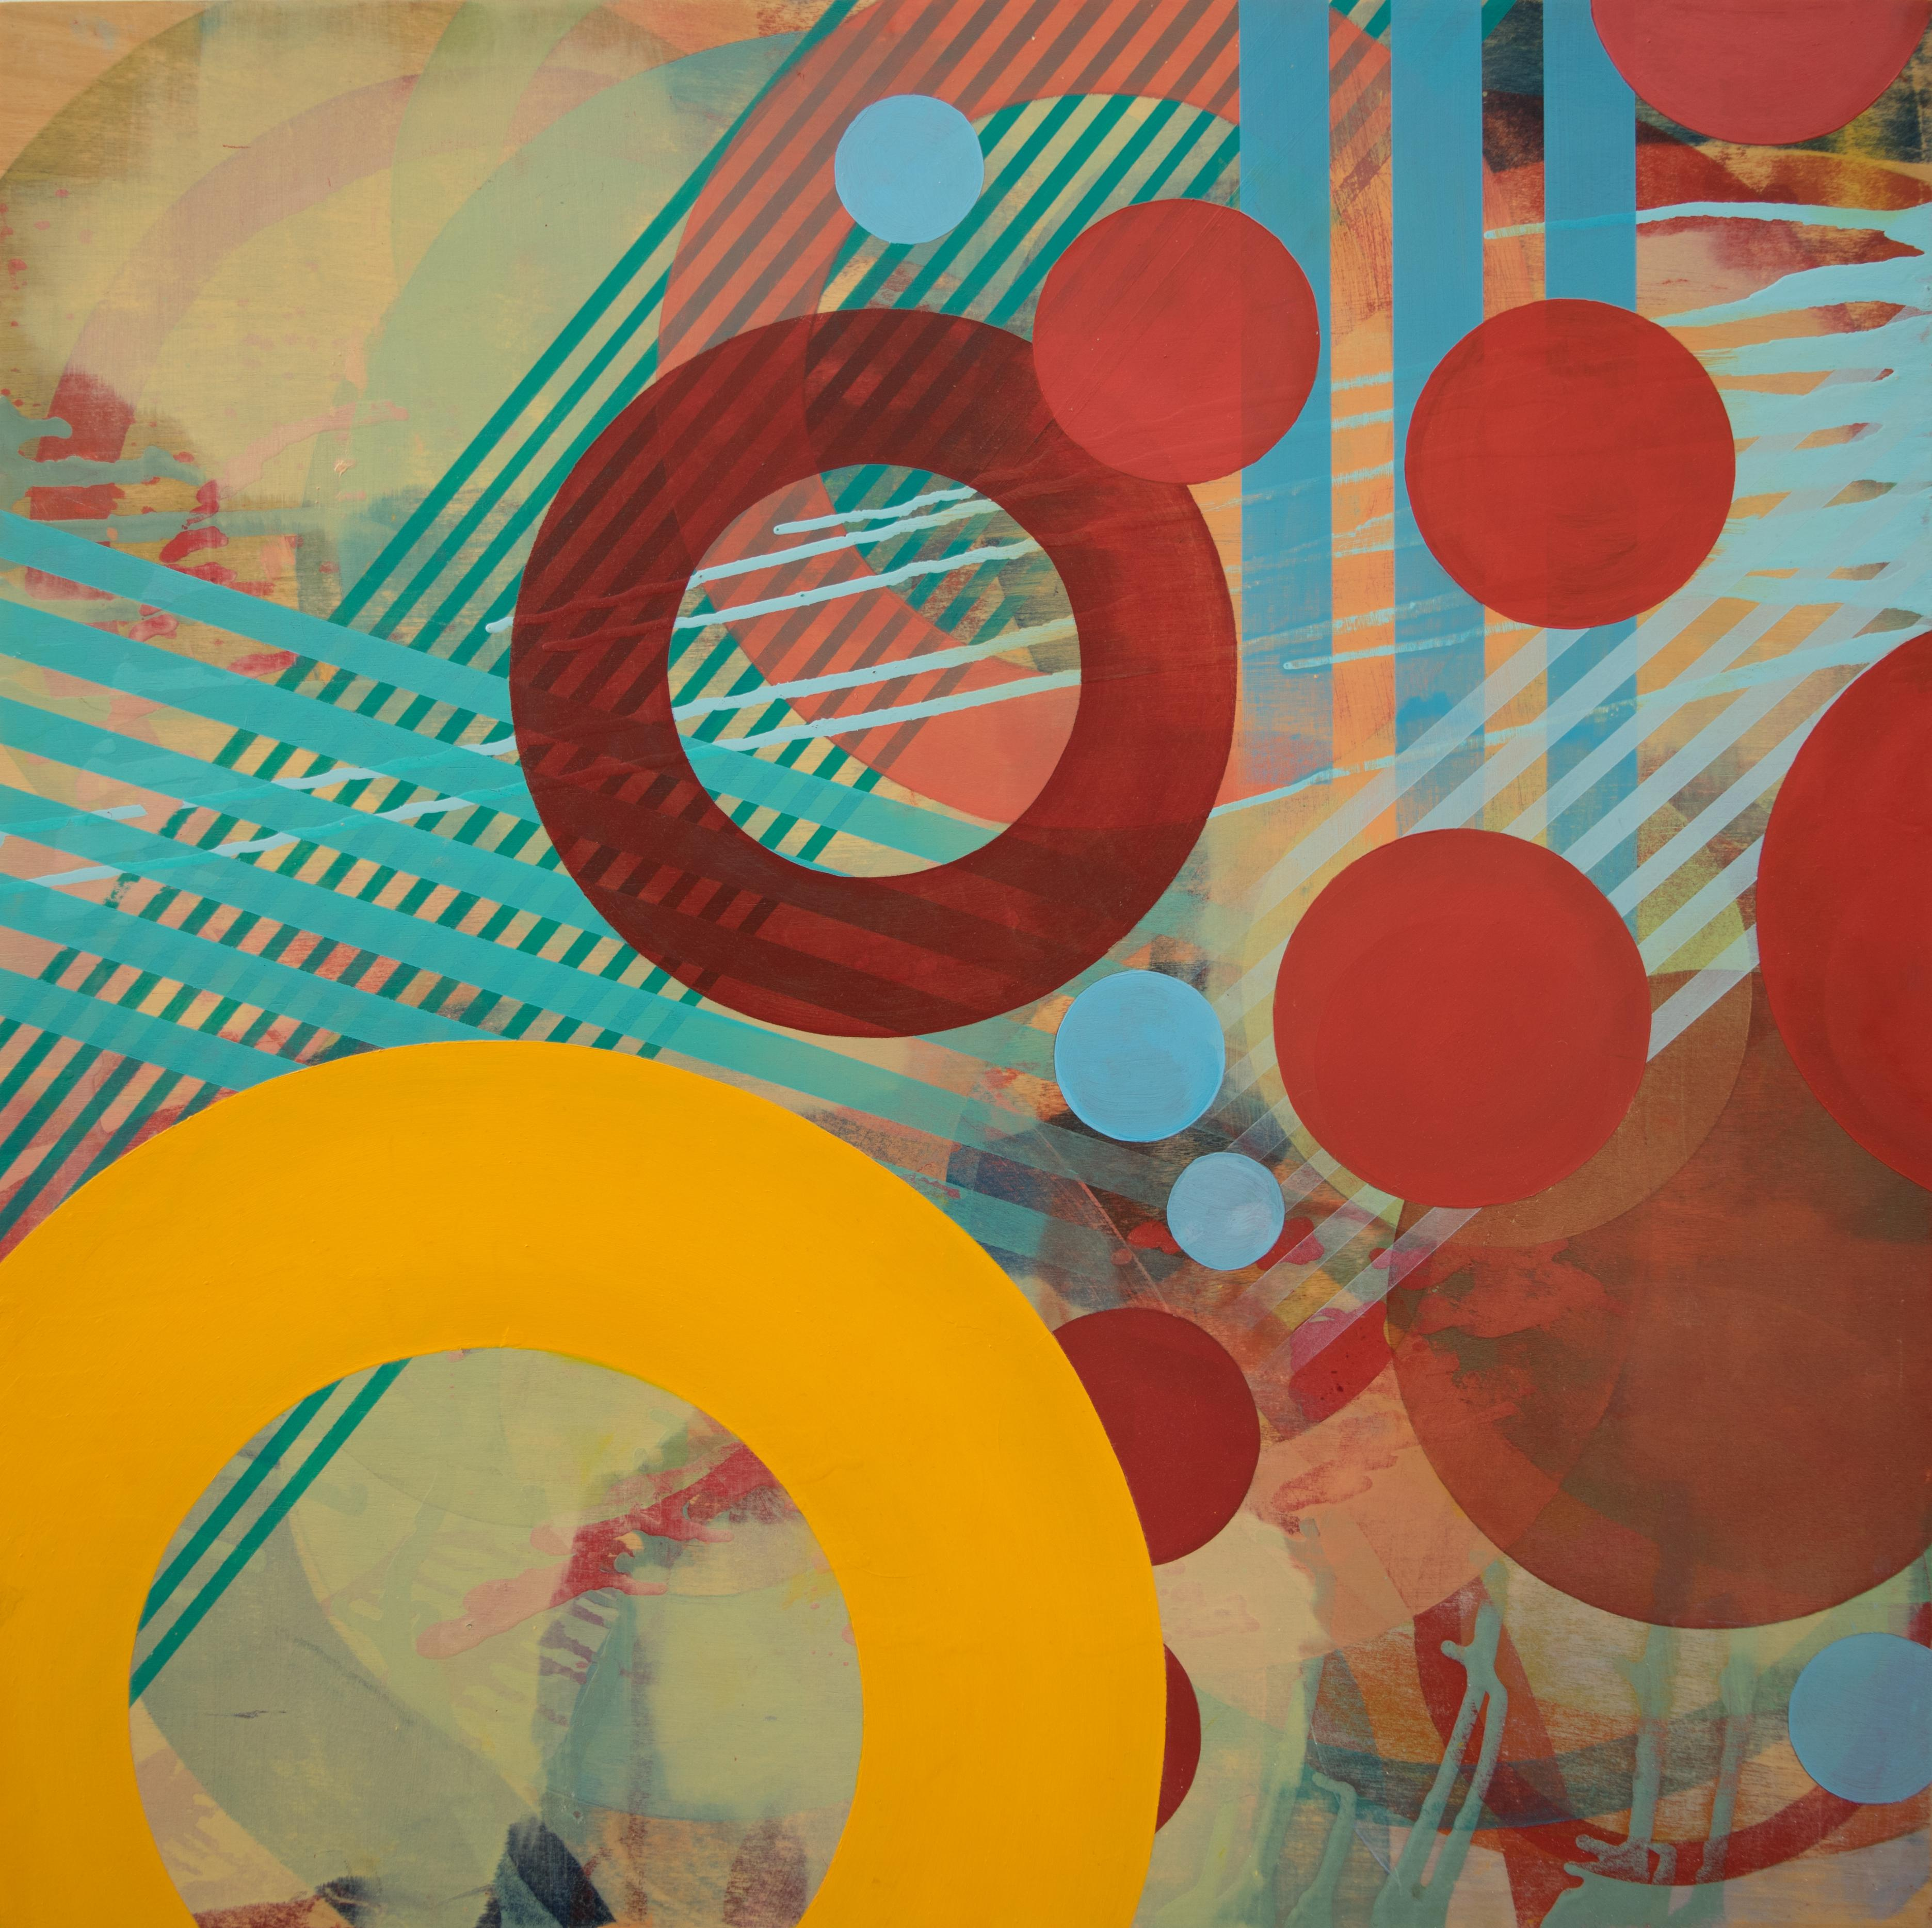 Primary Colors Square Contemporary Geometric Abstract Painting by Linda Schmidt